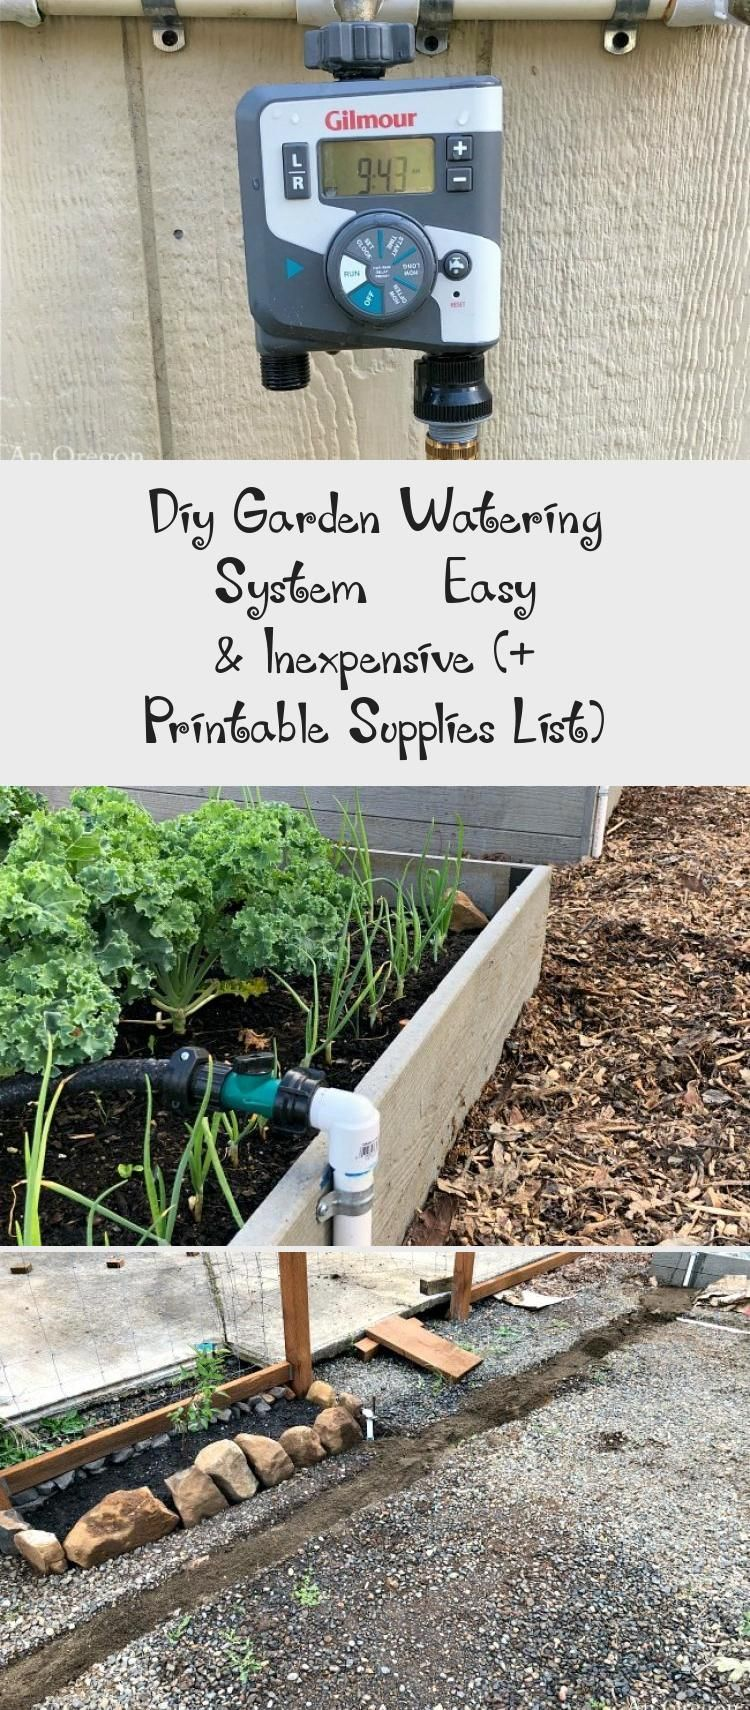 We are LOVING this easy DIY automatic garden watering system for our raised vegeautomatic